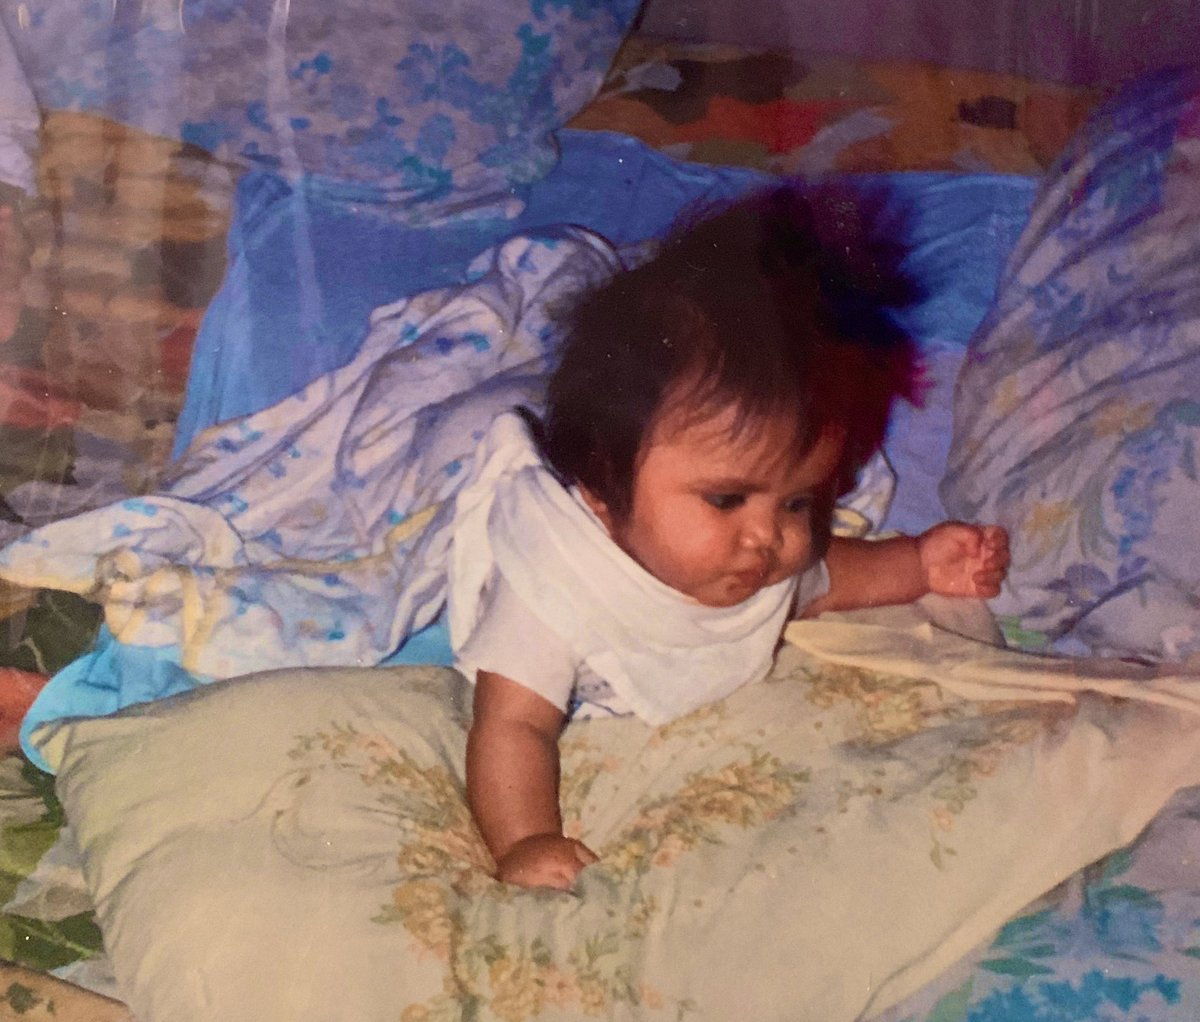 Keep calm like Baby Risa surrounded by three different pillow case patterns #hair pic.twitter.com/O4ai2XhFrX